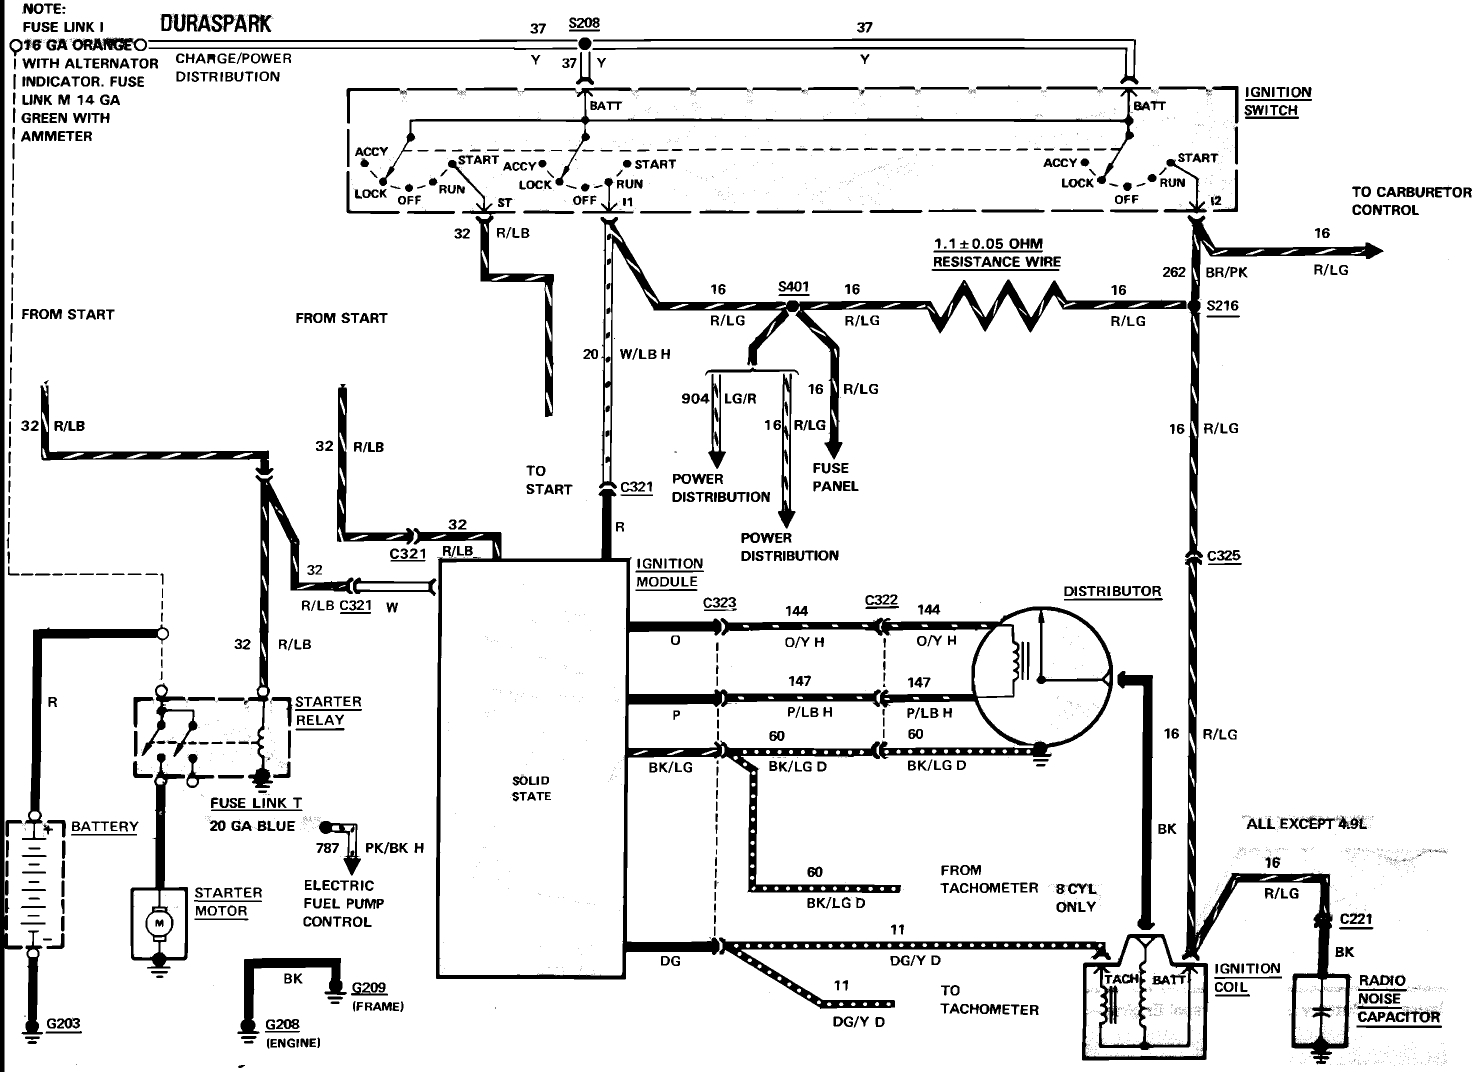 joyner starter switch wire diagram 1989 ford f150 ignition wiring diagram | free wiring diagram